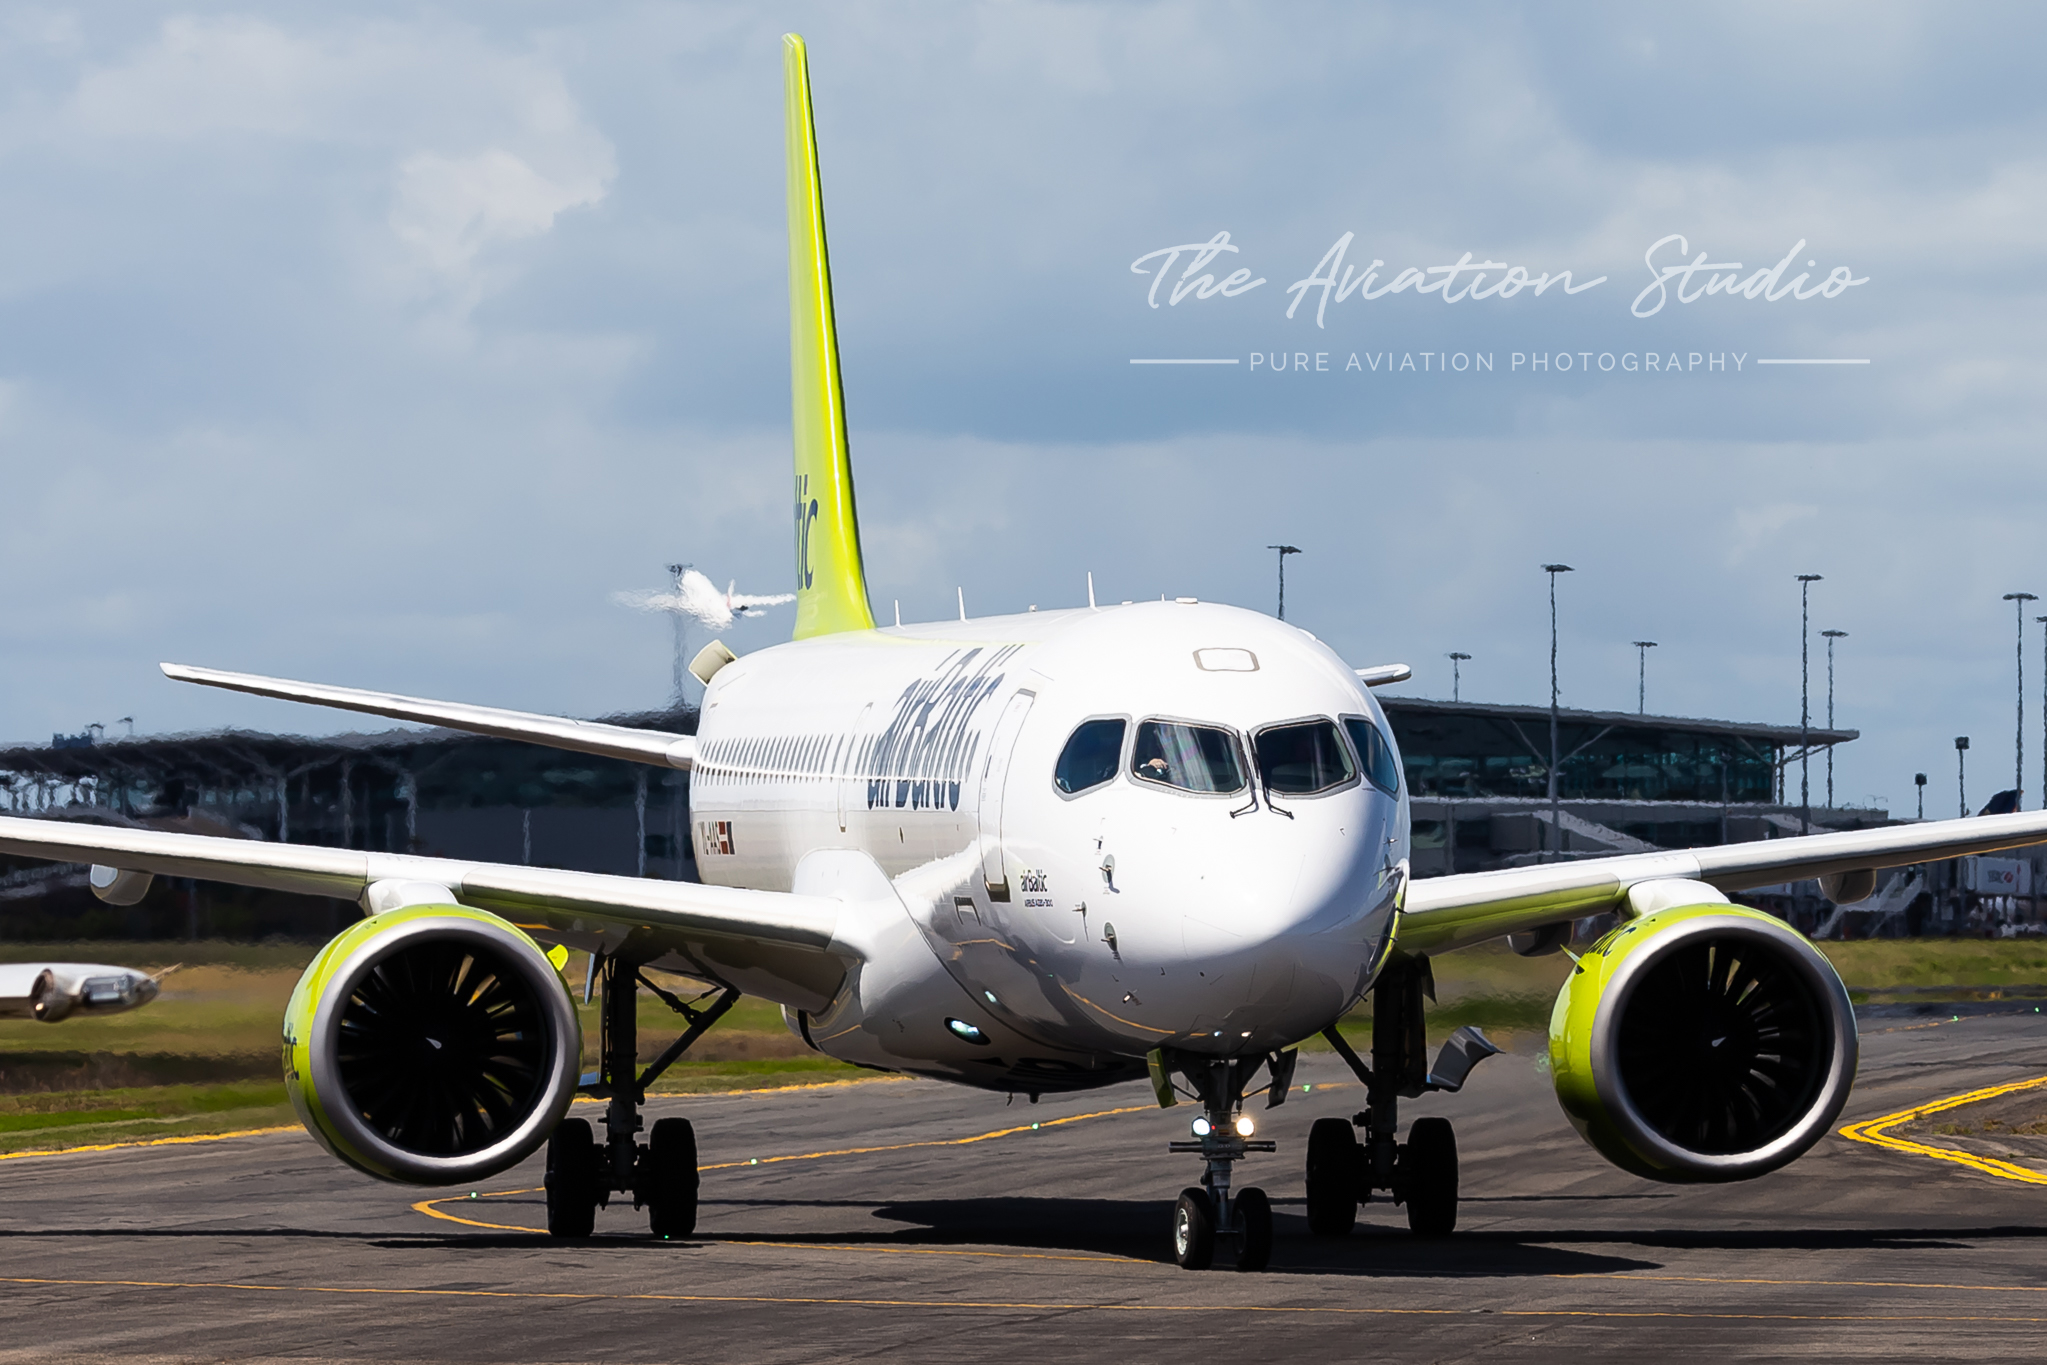 Air Baltic Airbus A220 taxiing at Brisbane Airport